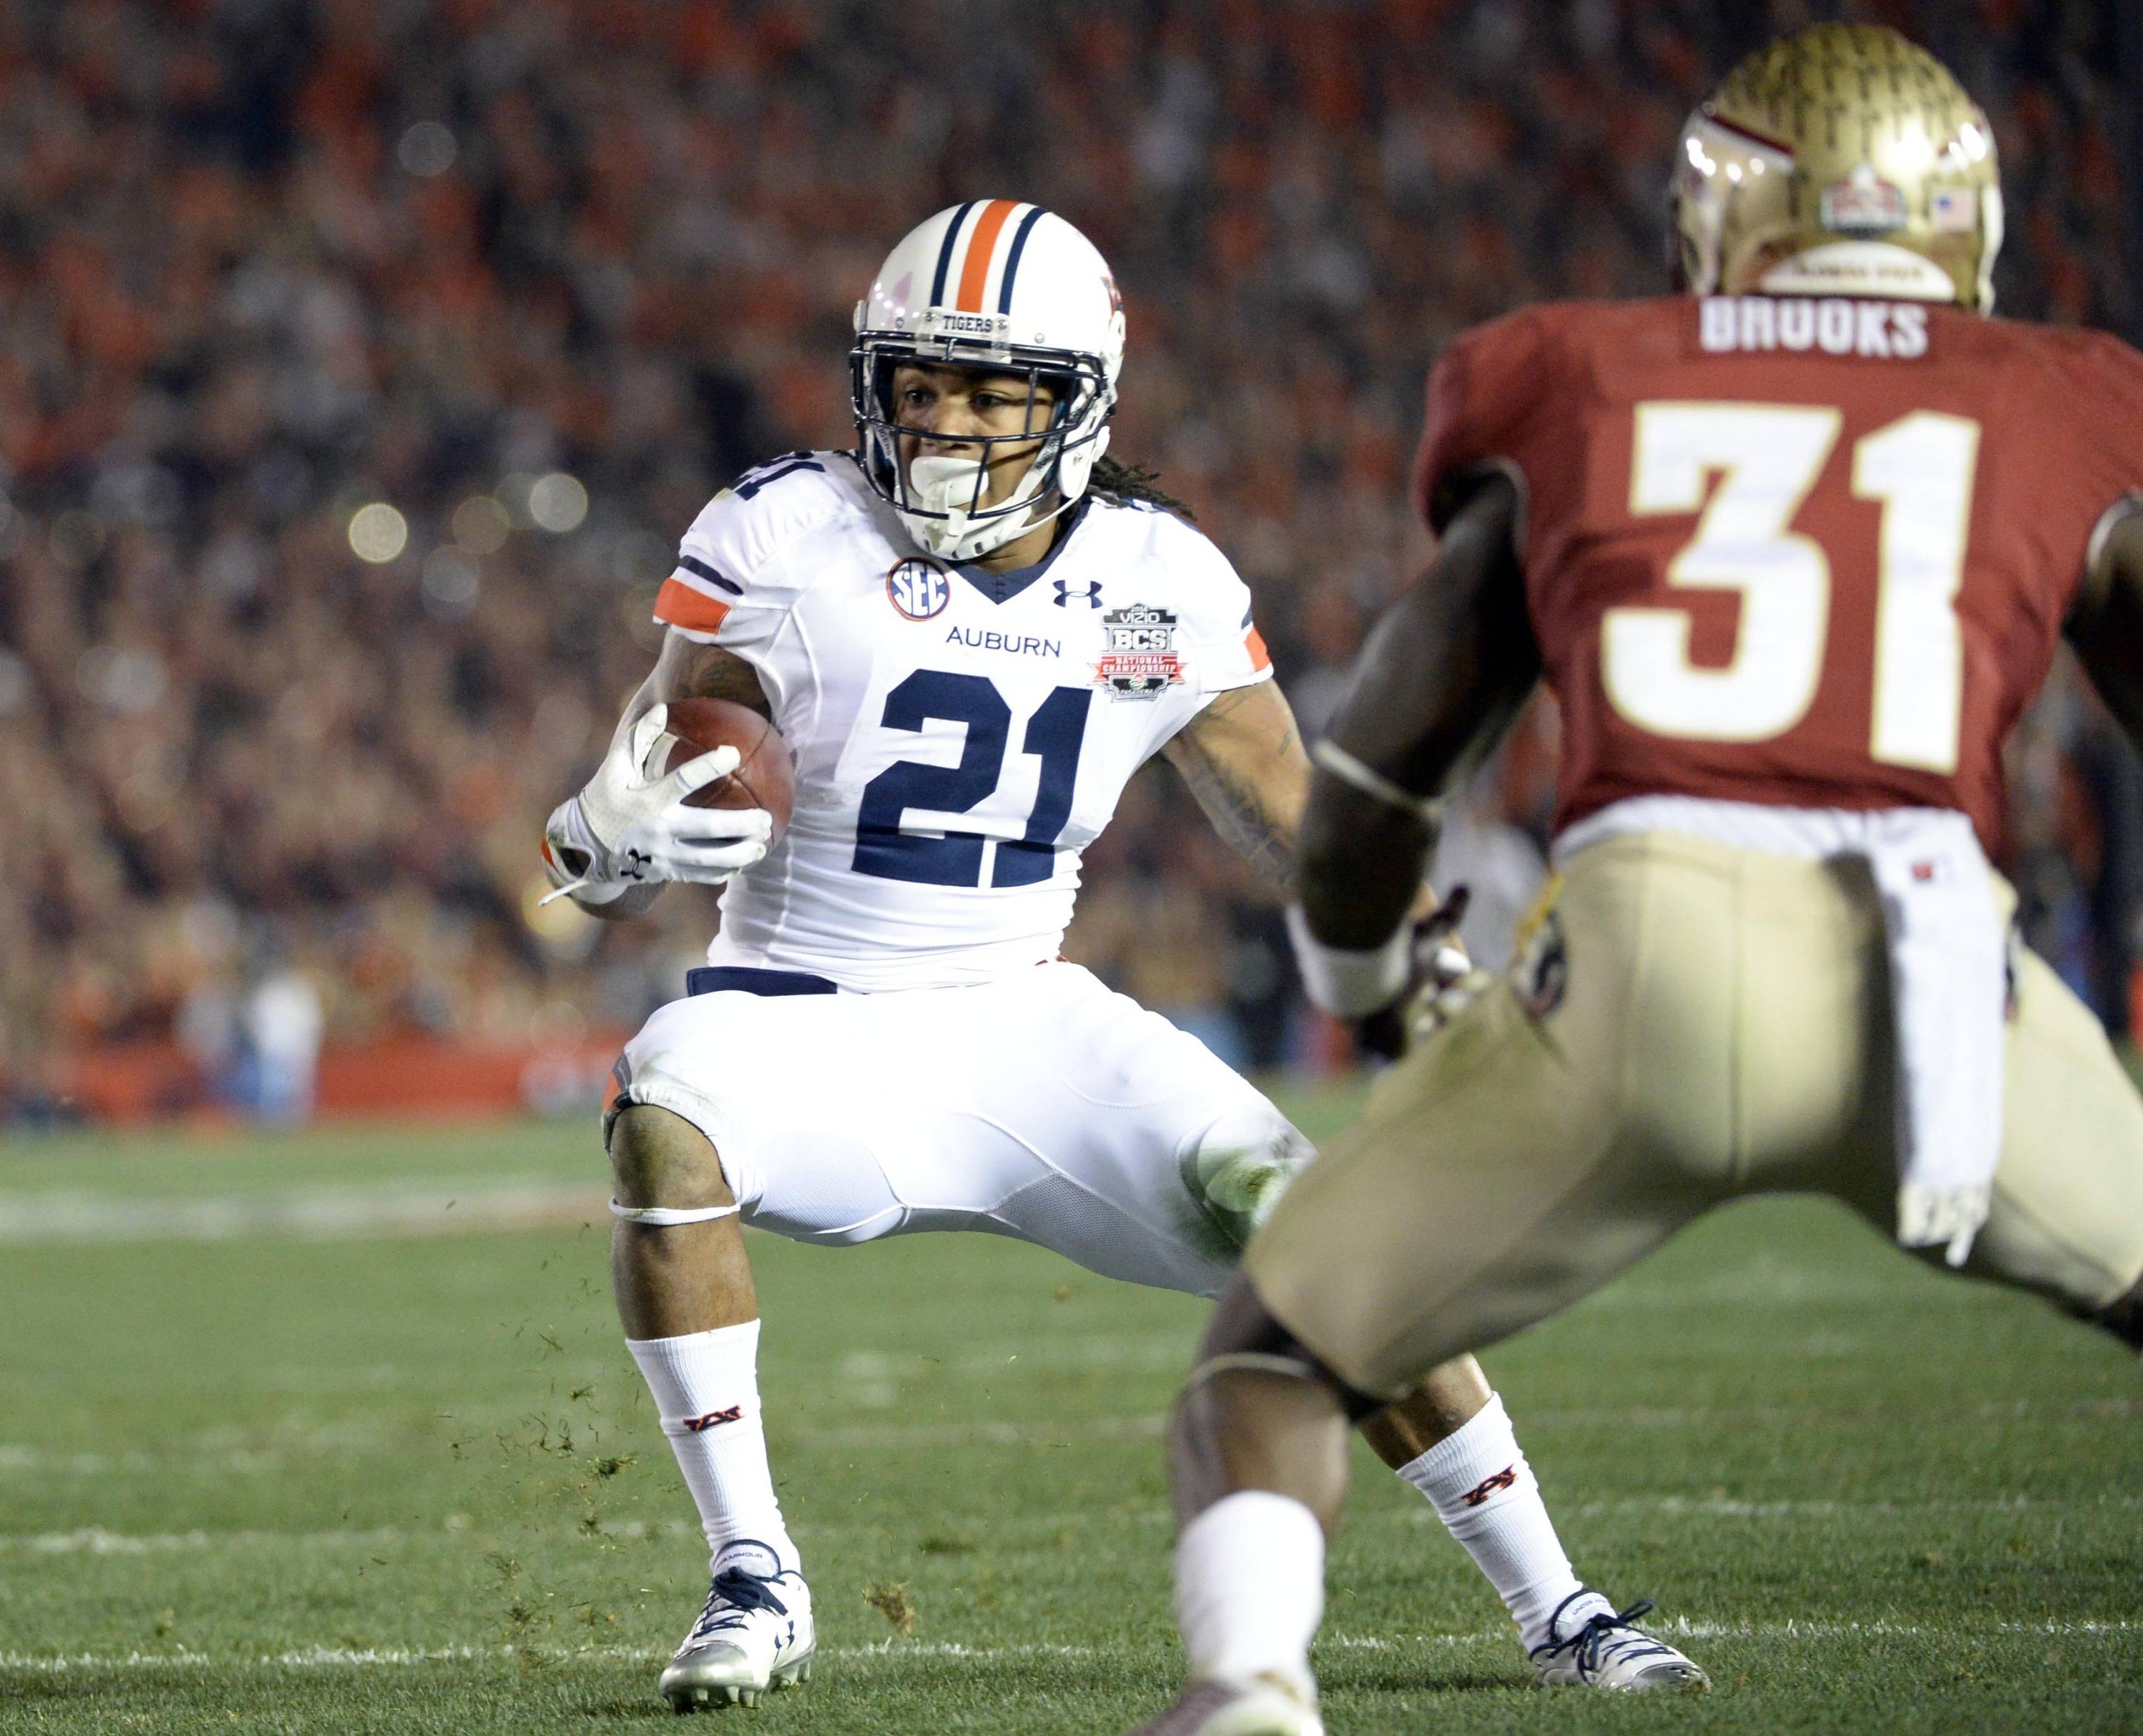 Jan 6, 2014; Pasadena, CA, USA; Auburn Tigers running back Tre Mason (21) runs for a touchdown against Florida State Seminoles defensive back Terrence Brooks (31) during the first half of the 2014 BCS National Championship game at the Rose Bowl.  Mandatory Credit: Richard Mackson-USA TODAY Sports